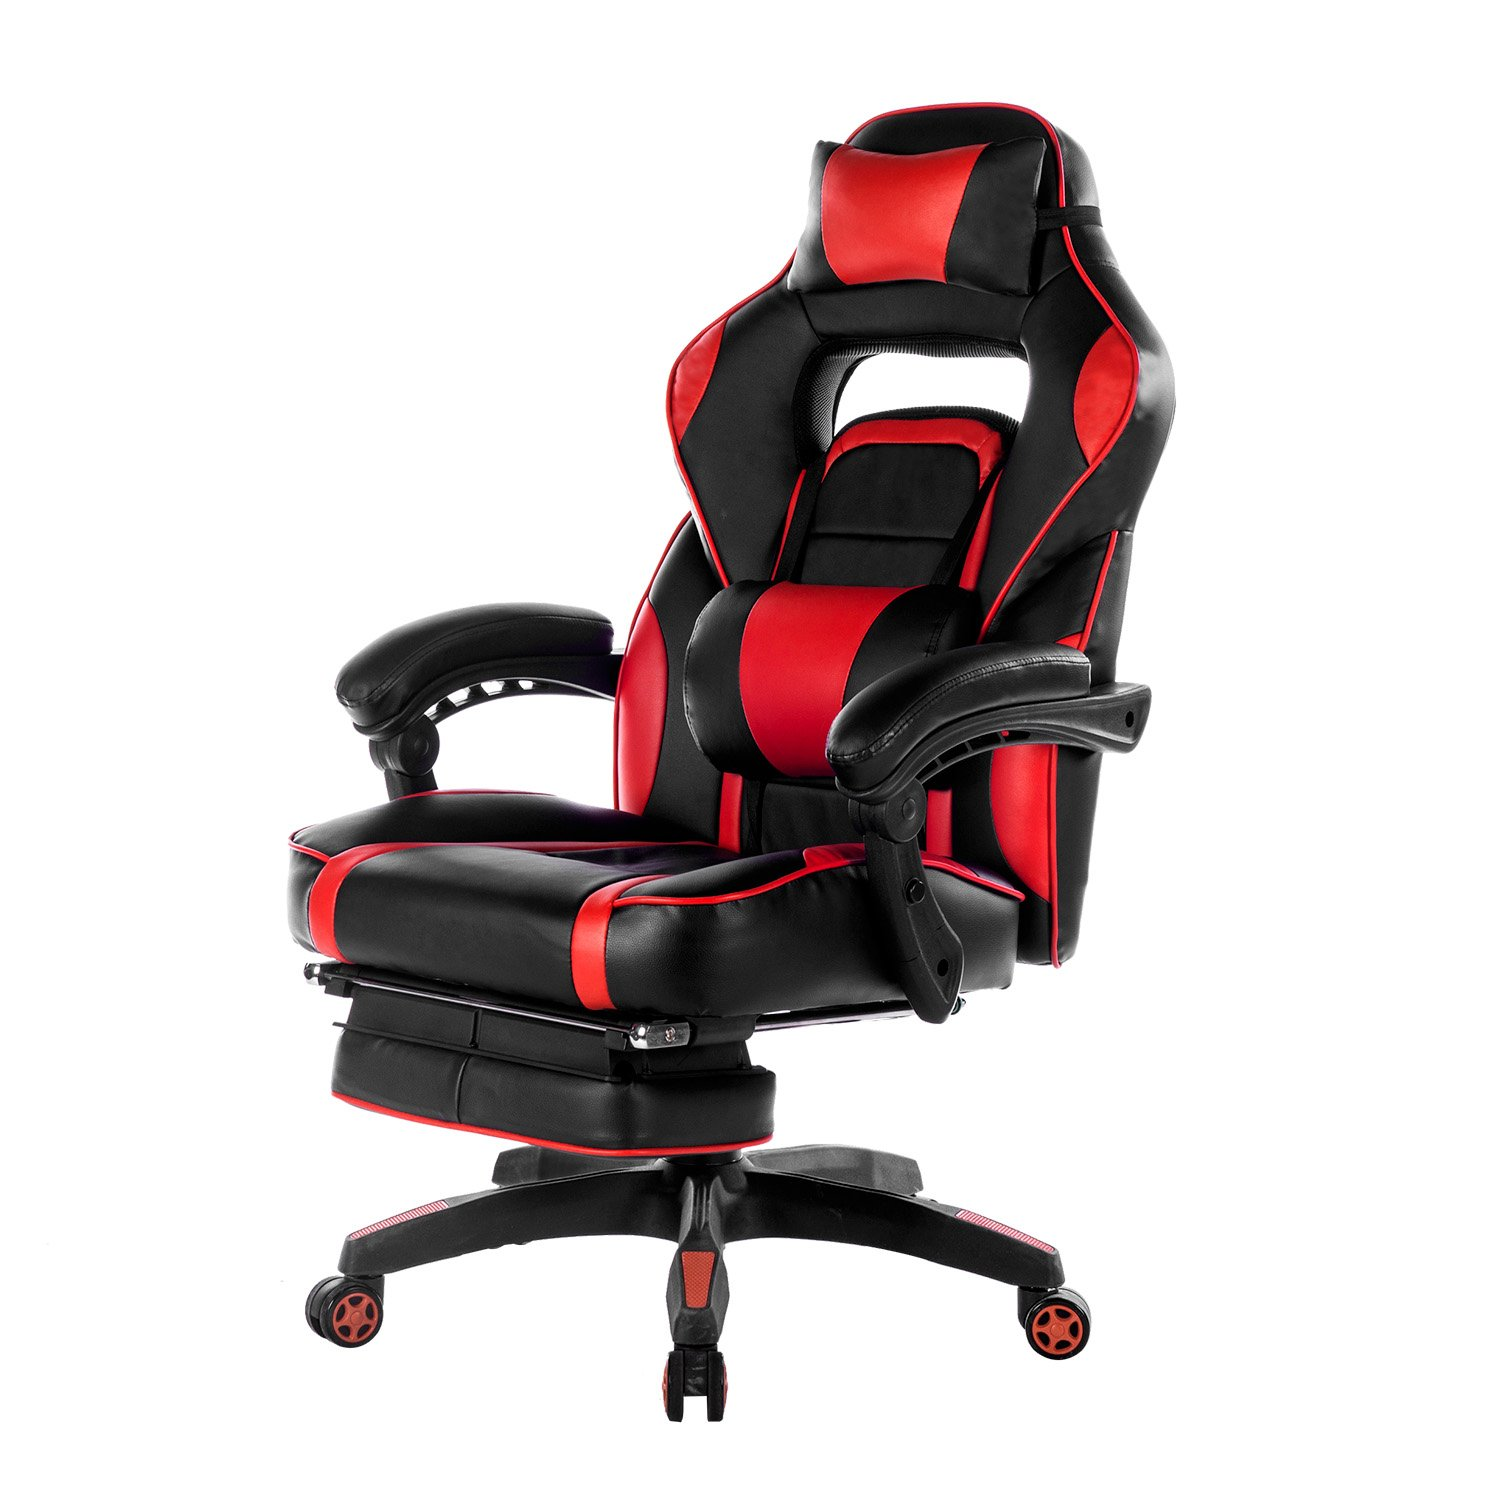 Merax High-Back Racing Home Office Chair - Ergonomic Gaming Chair with Footrest - PU Leather Swivel Computer Home